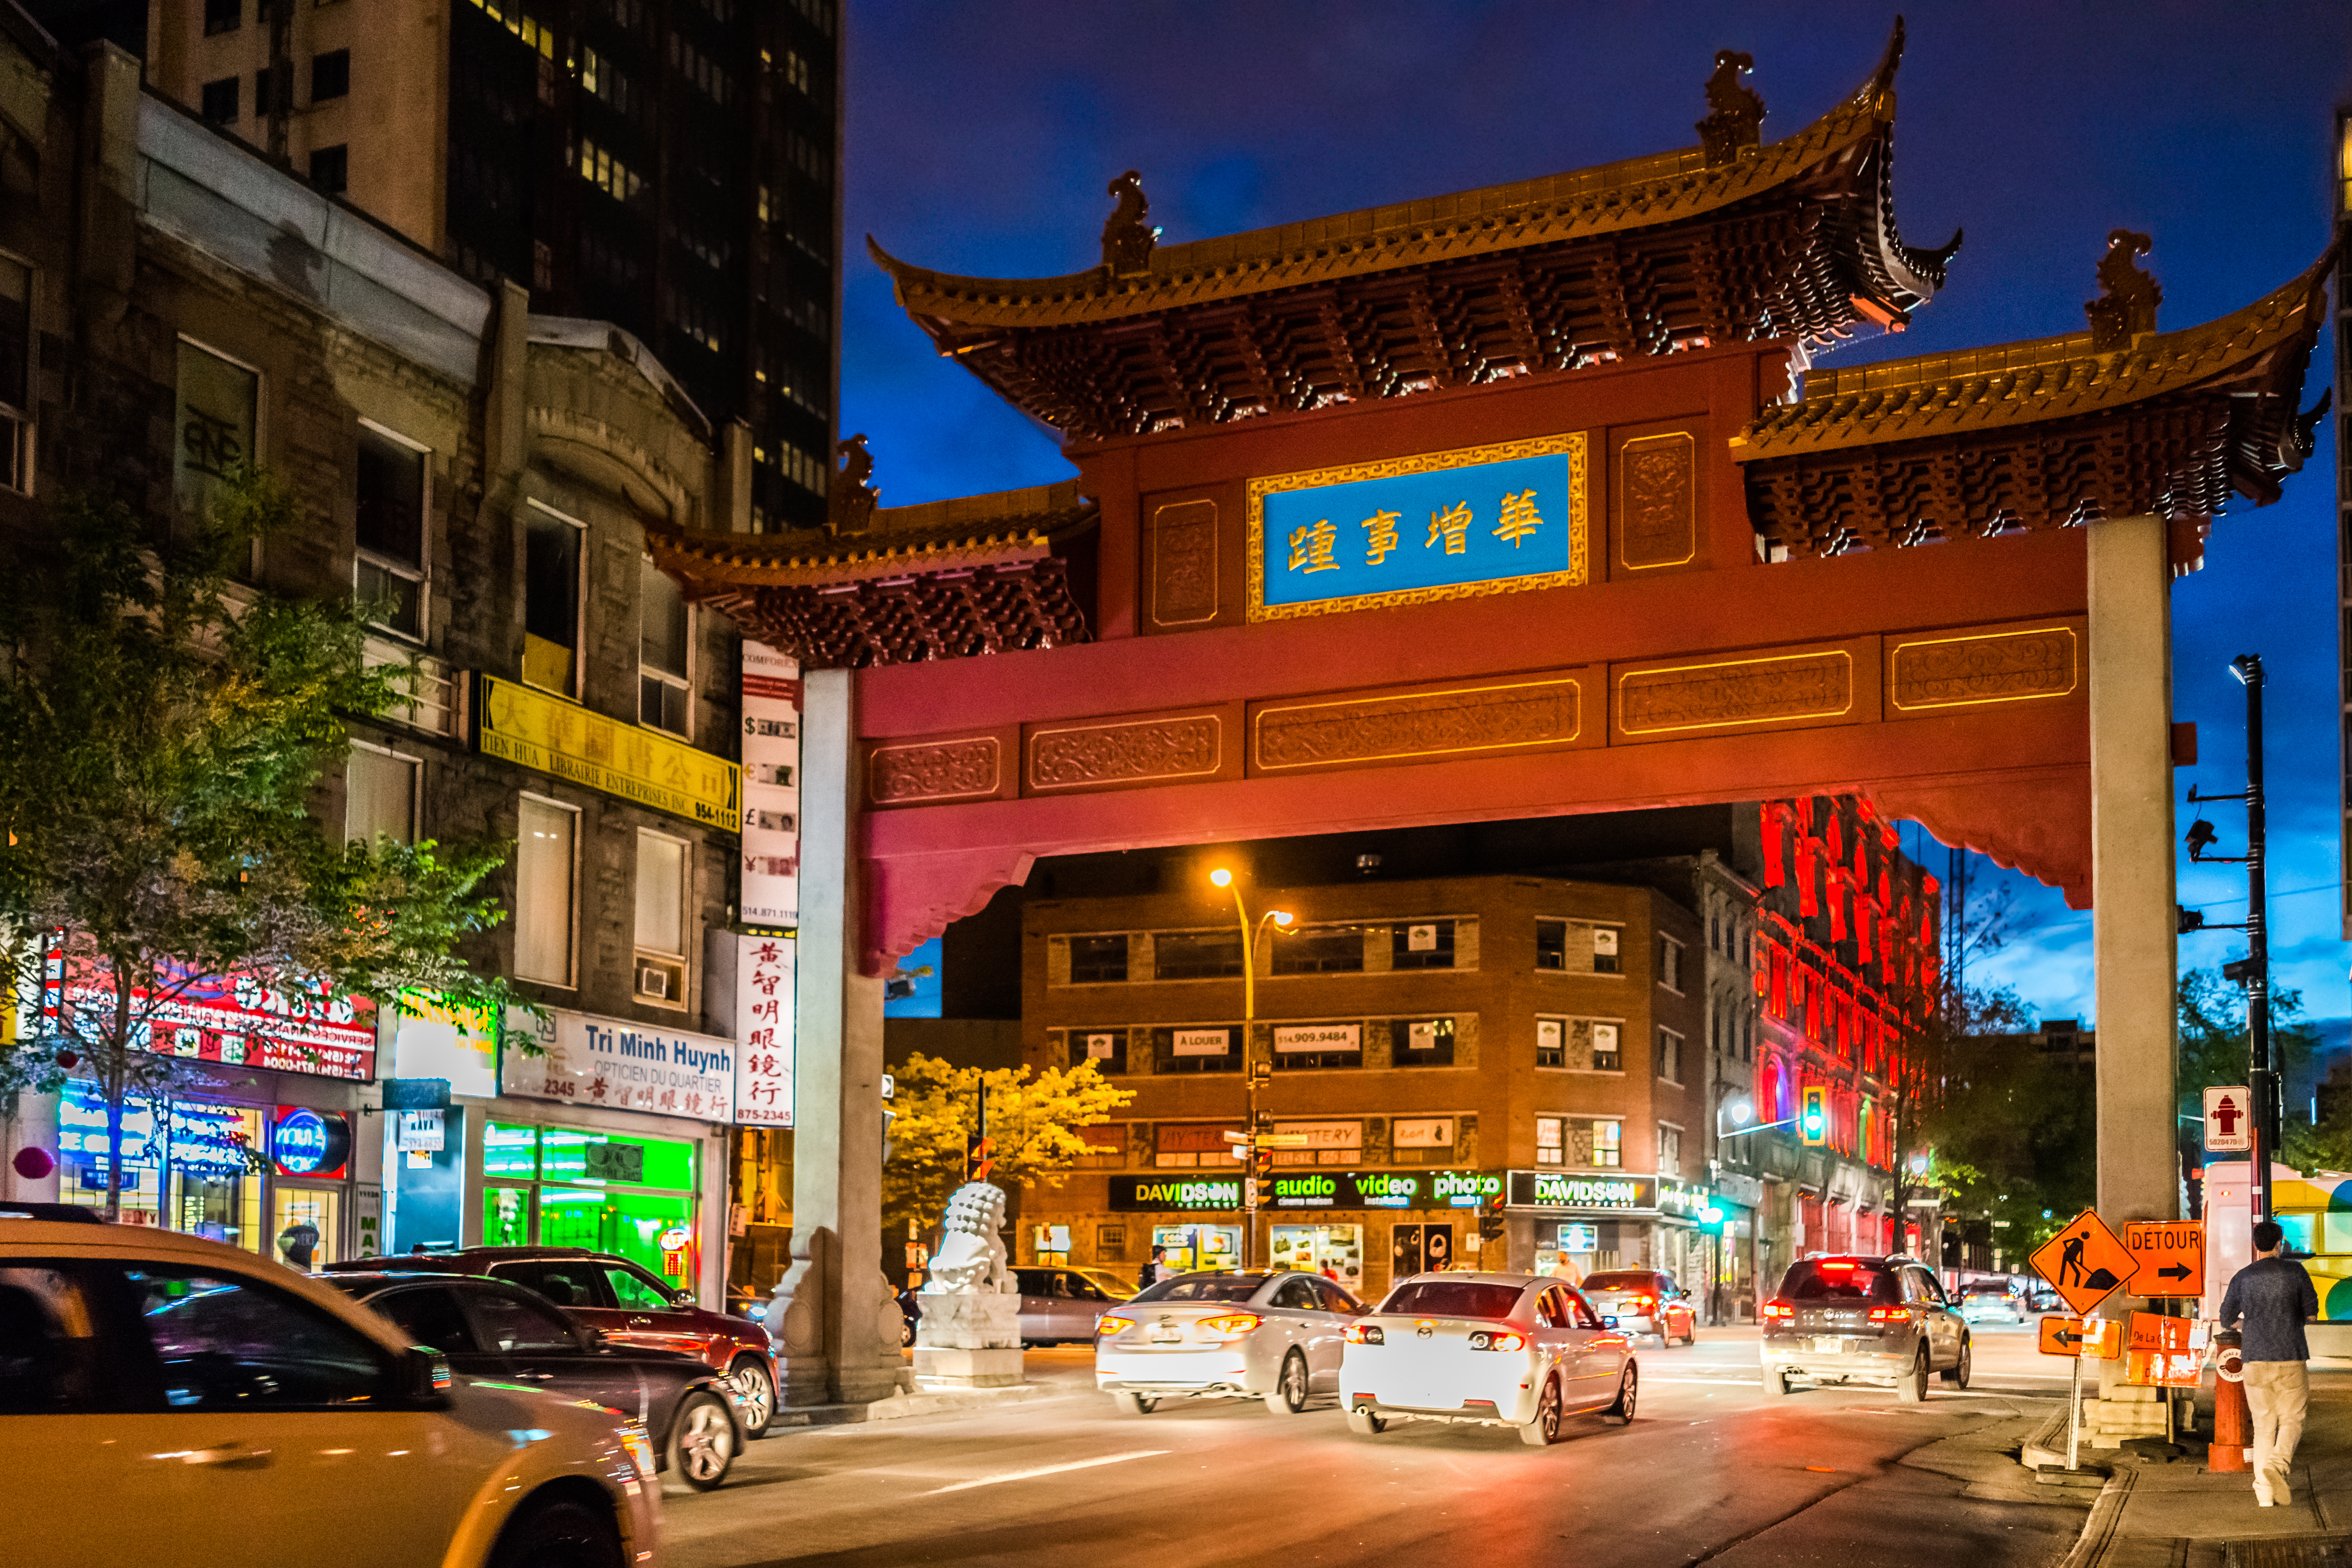 A Giant Night Market Takes Over Chinatown This Weekend